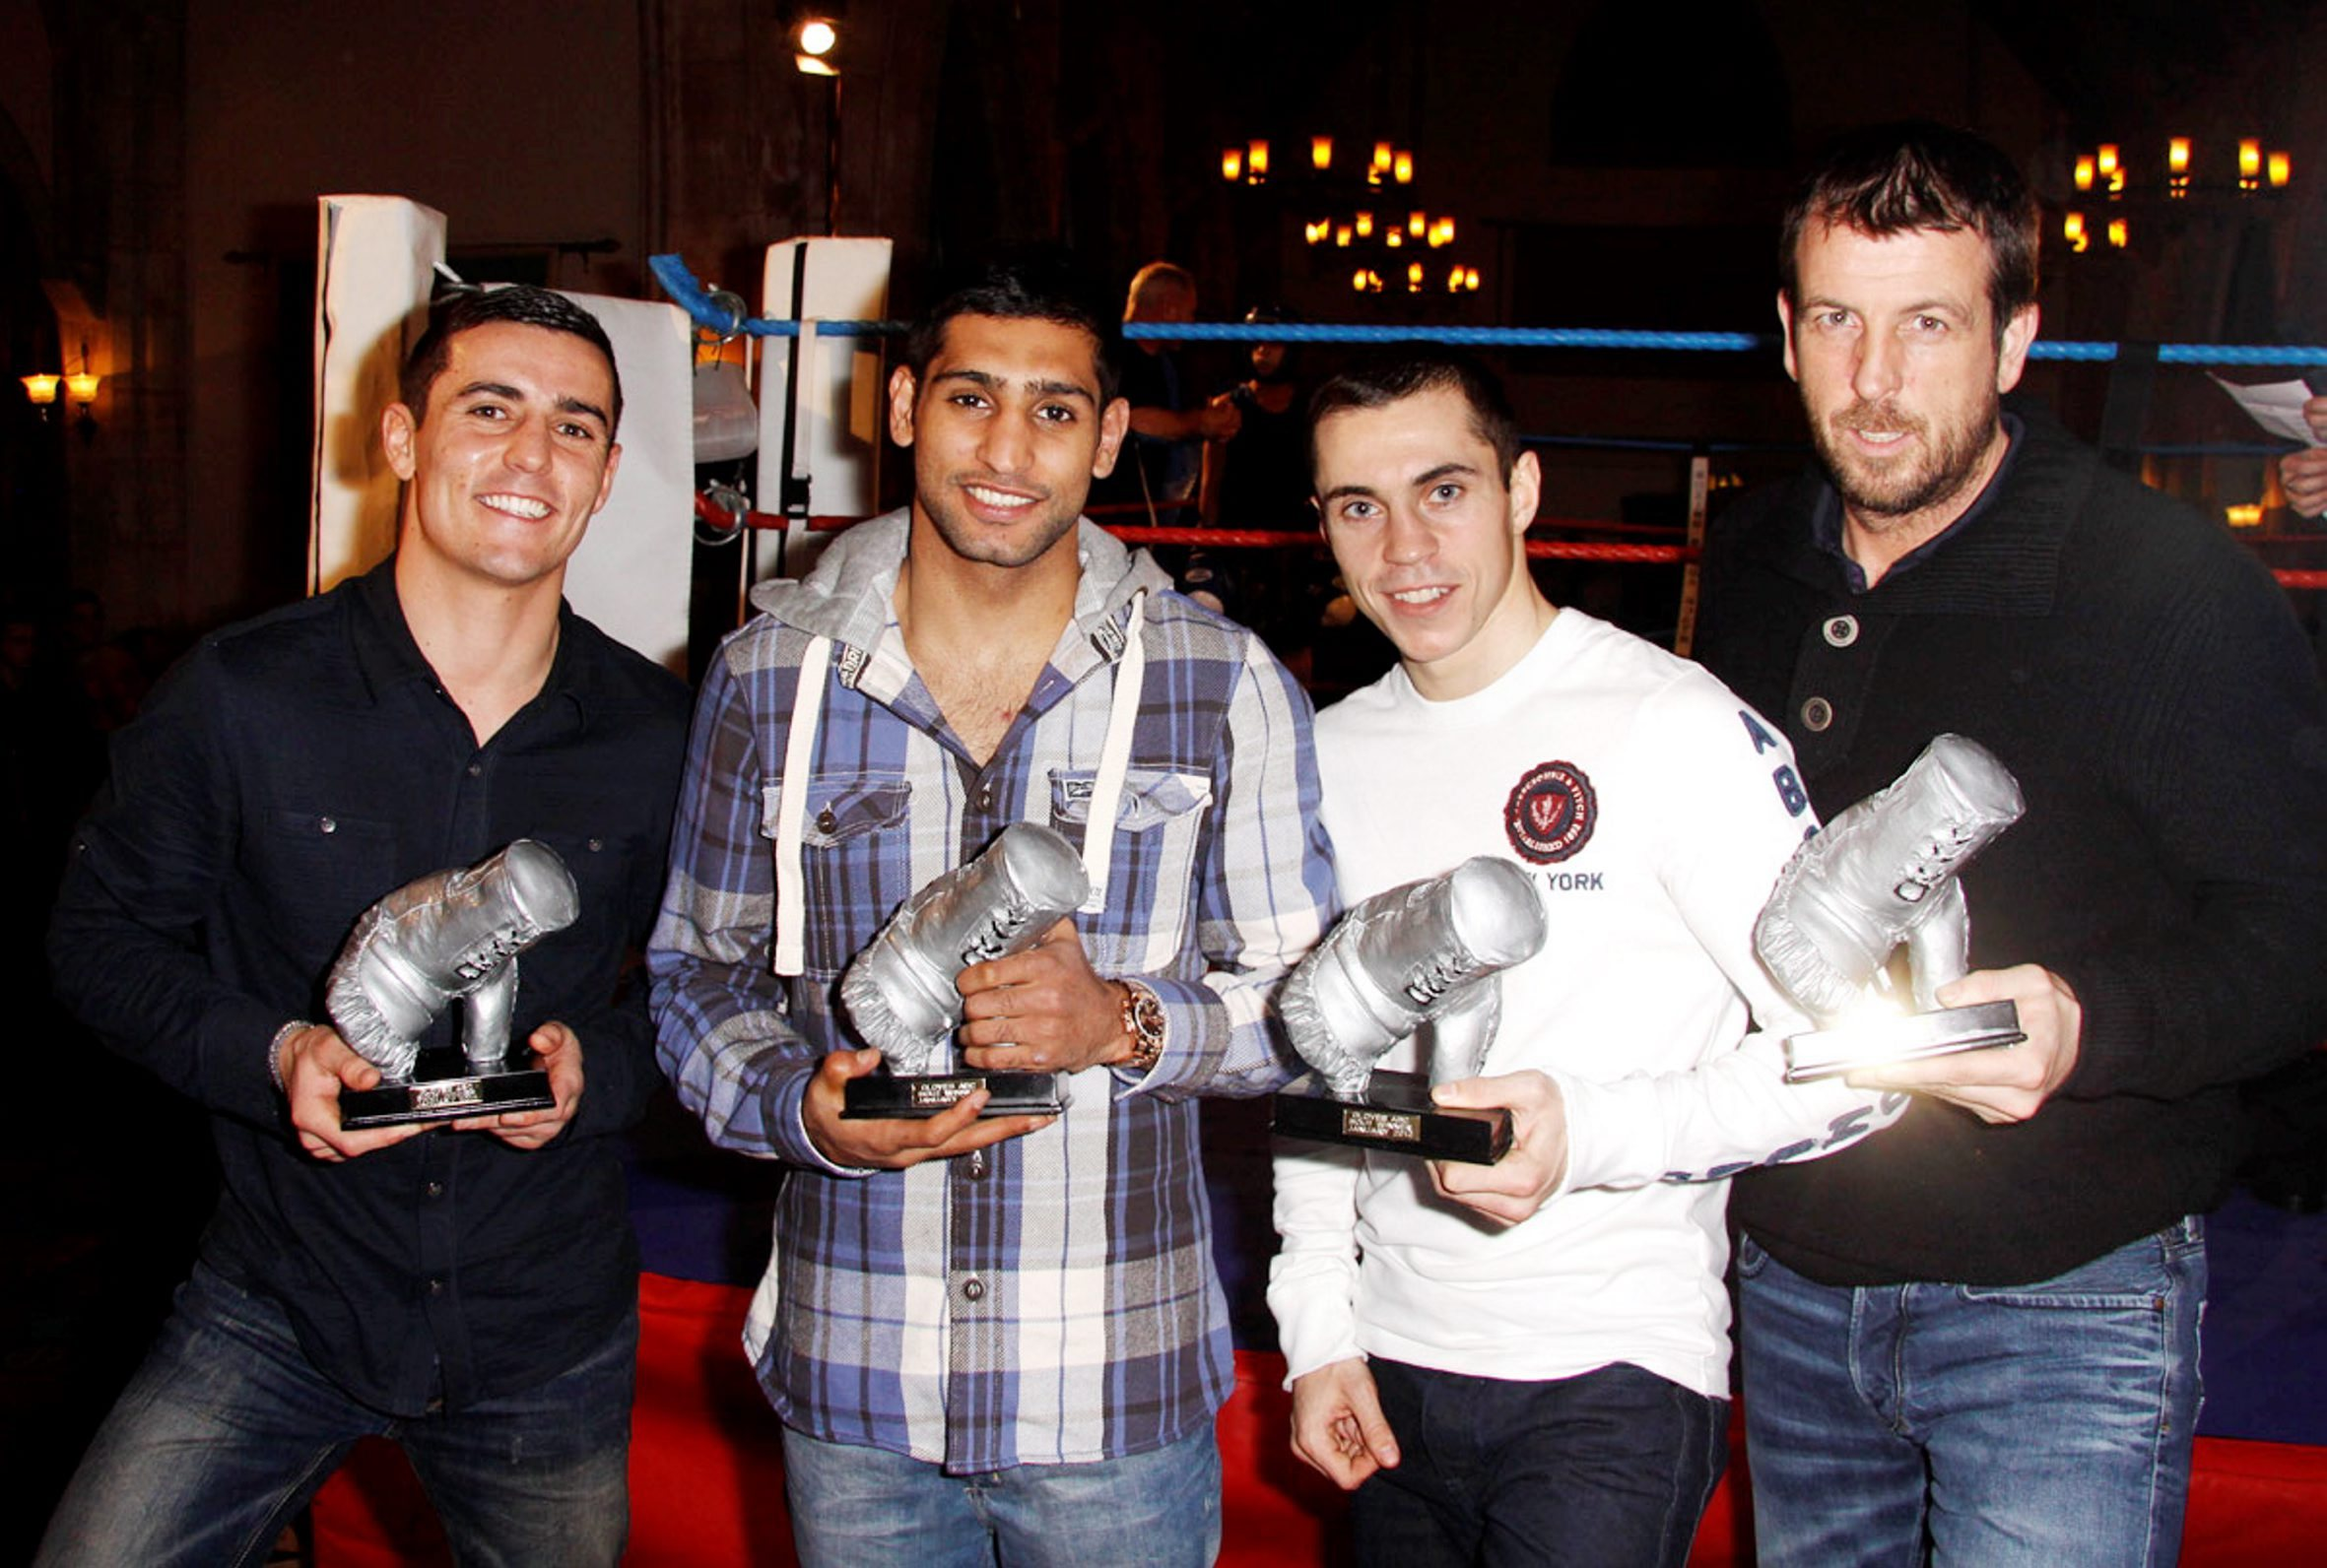 READY: Bolton-based boxers, from left, Anthony Crolla, Amir Khan and Scott Quigg with trainer Joe Gallagher, right